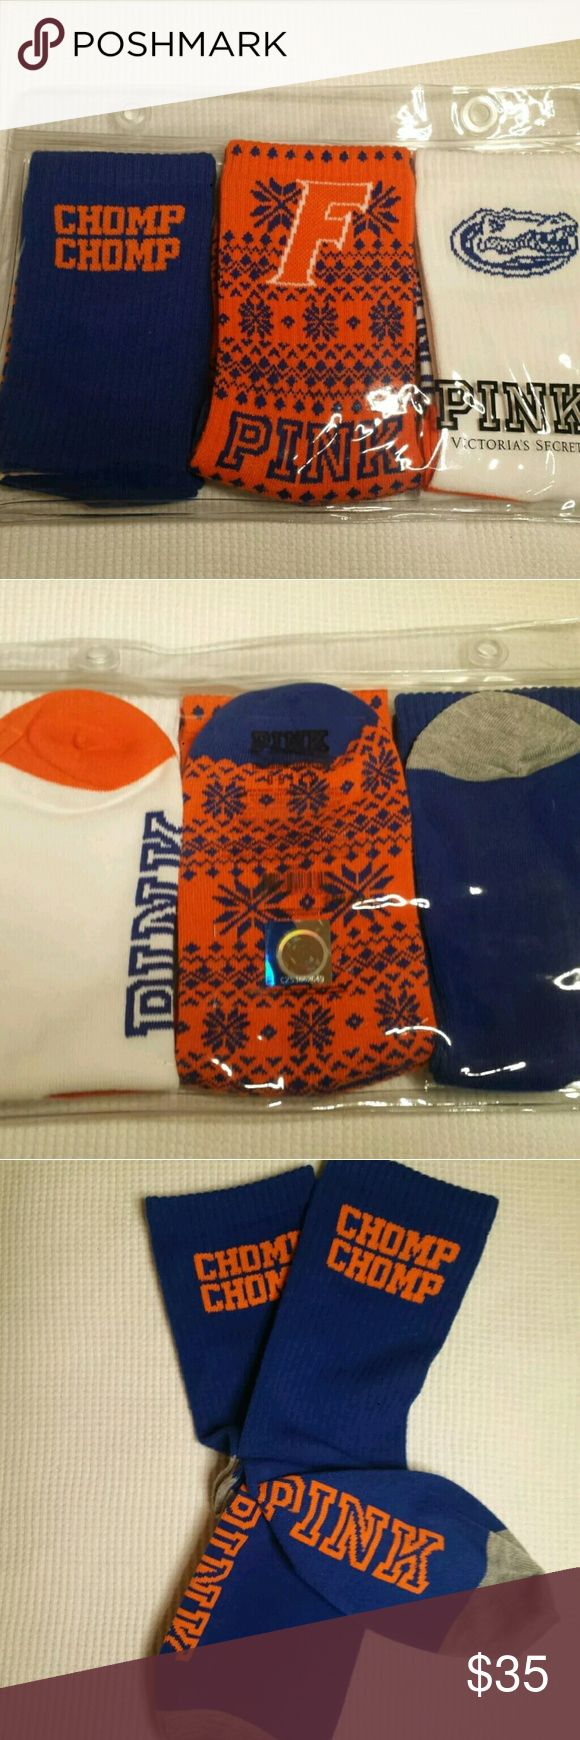 """PINK University of Florida UF Gators 3 Crew Socks 3 pair of BRAND NEW UF GATOR crew socks are in the original factory packaging in clear reusable seal-able pouch. The orange socks has the Florida """"F"""" symbol in orange with a blue holiday """"sweater"""" pattern all over & PINK logo on the bottom of the orange pair. The white pair has the Gator head logo in blue at the top of the socks & PINK logo in blue on the bottom. Blue pair has """" CHOMP CHOMP"""" in orange at the top & PINK logo in blue on the…"""